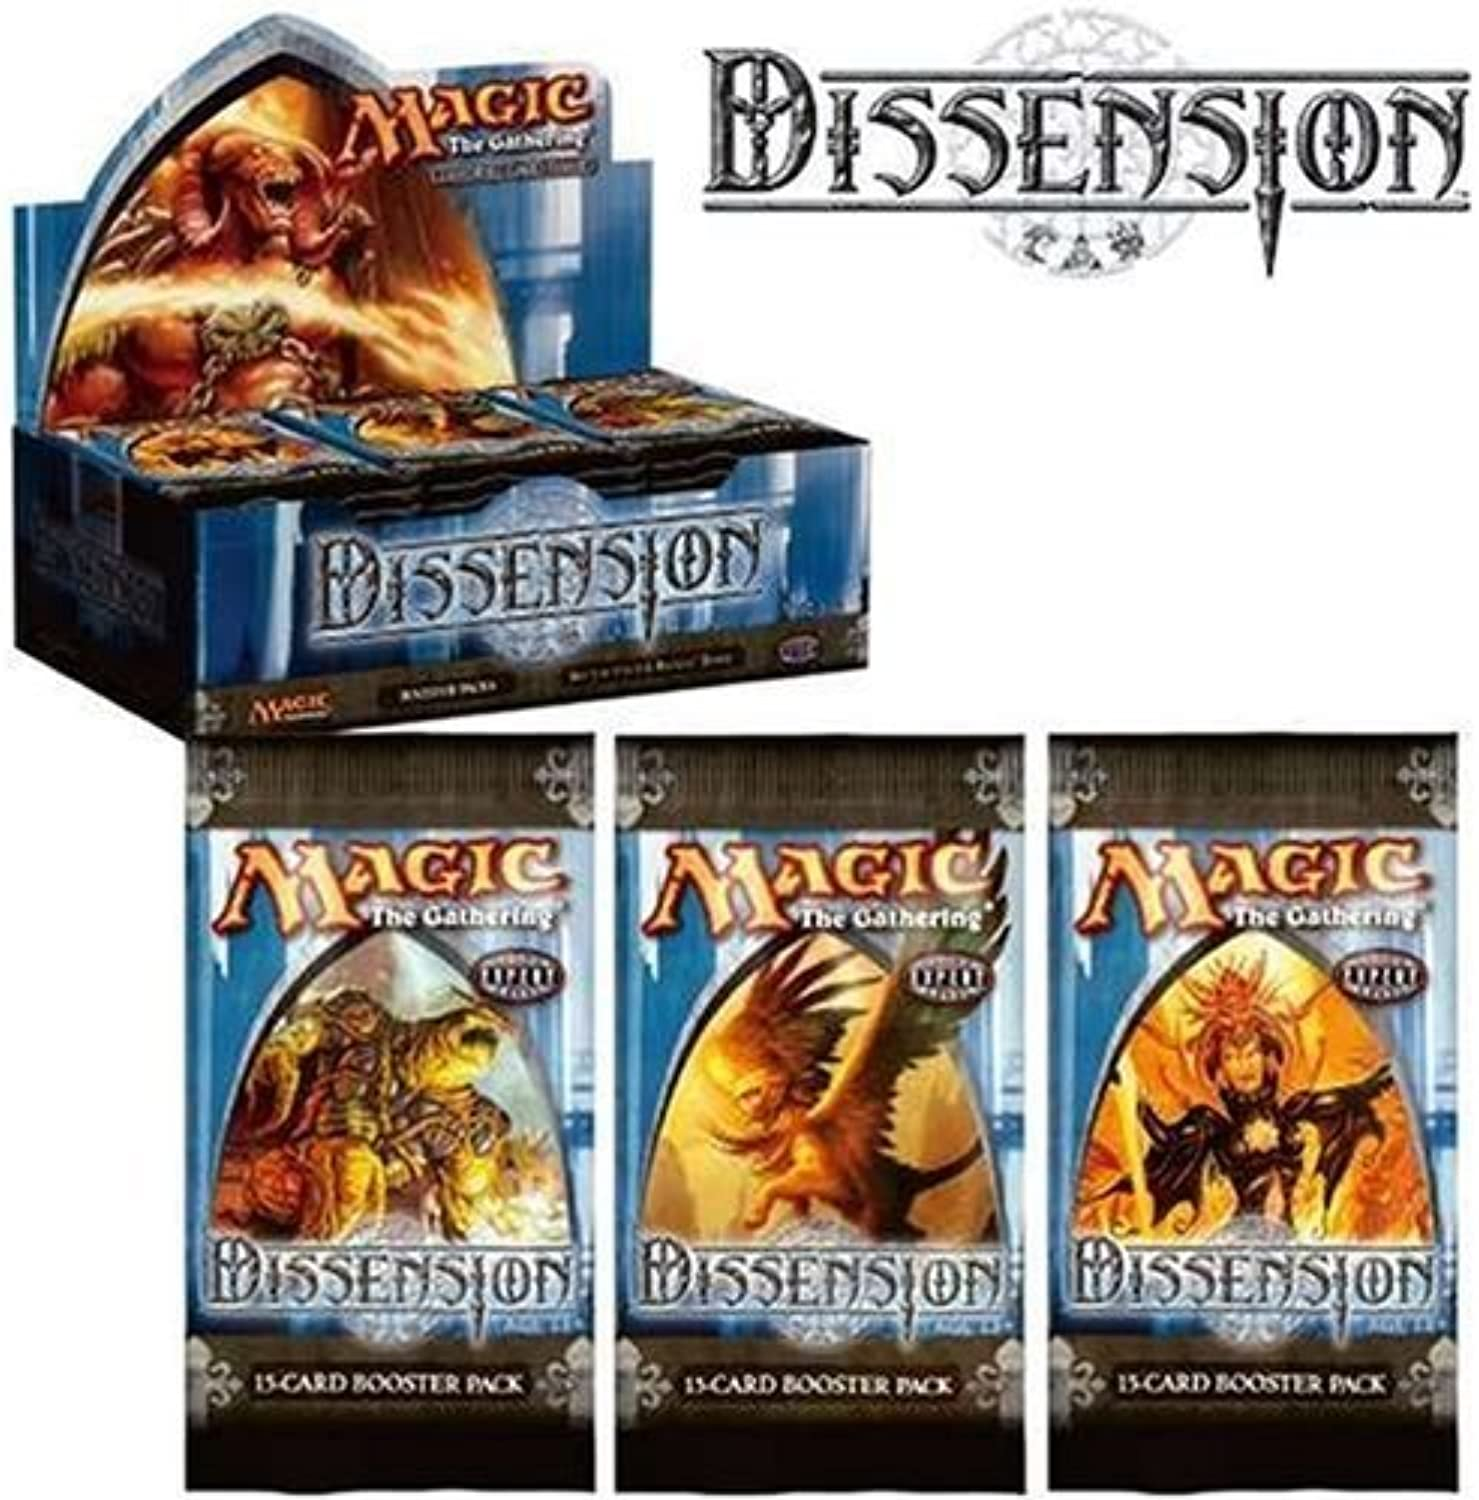 MTG Dissension Booster by Wizards of the Coast